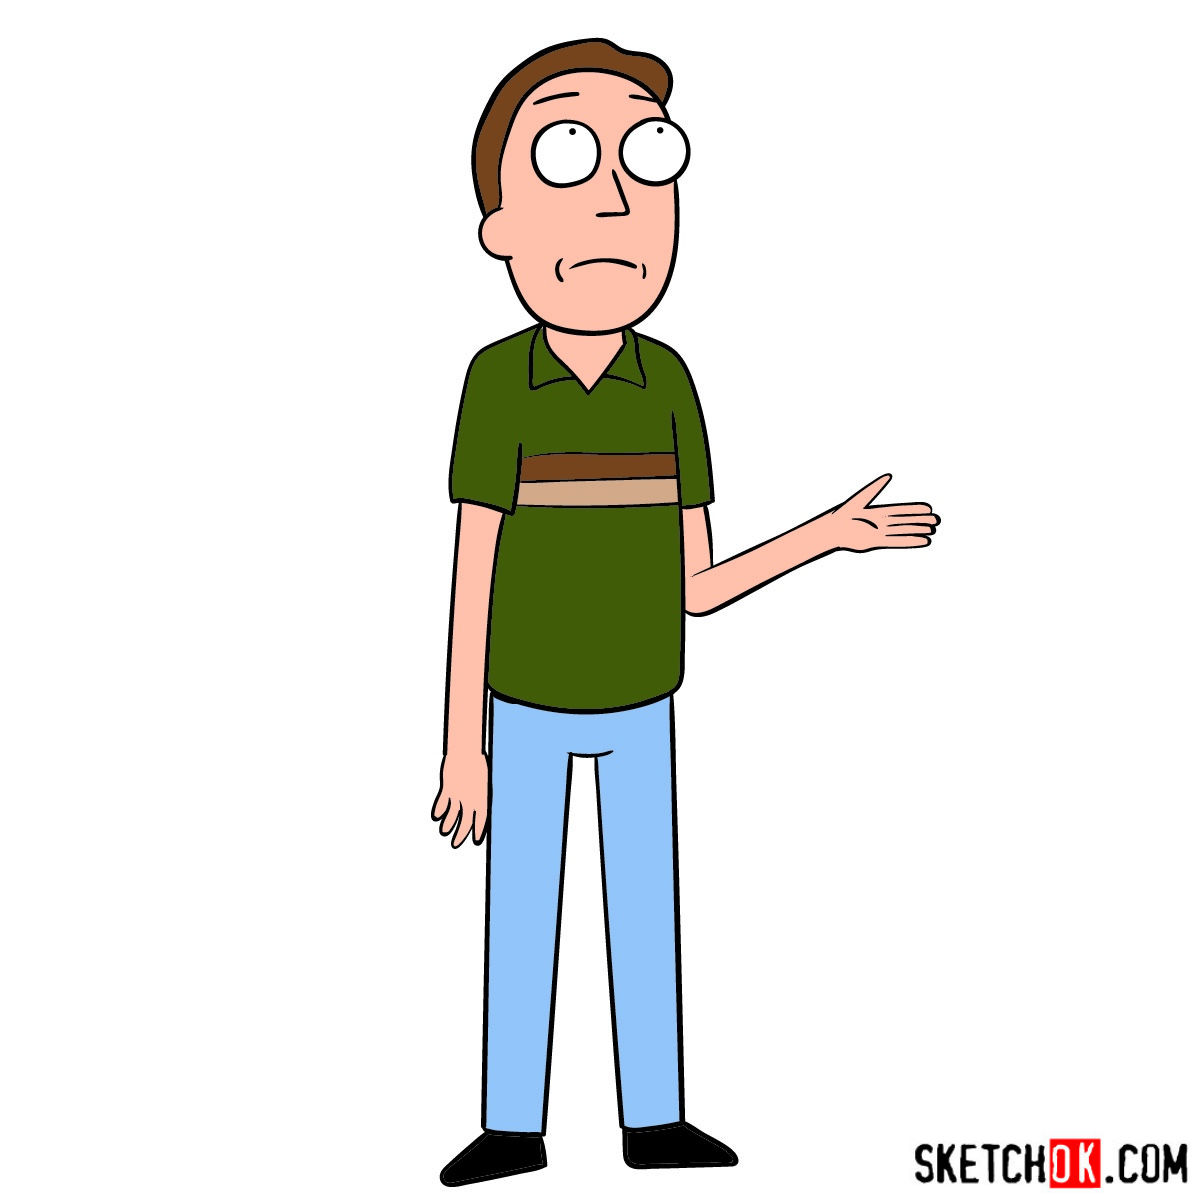 How to draw Jerry Smith, Morty's father